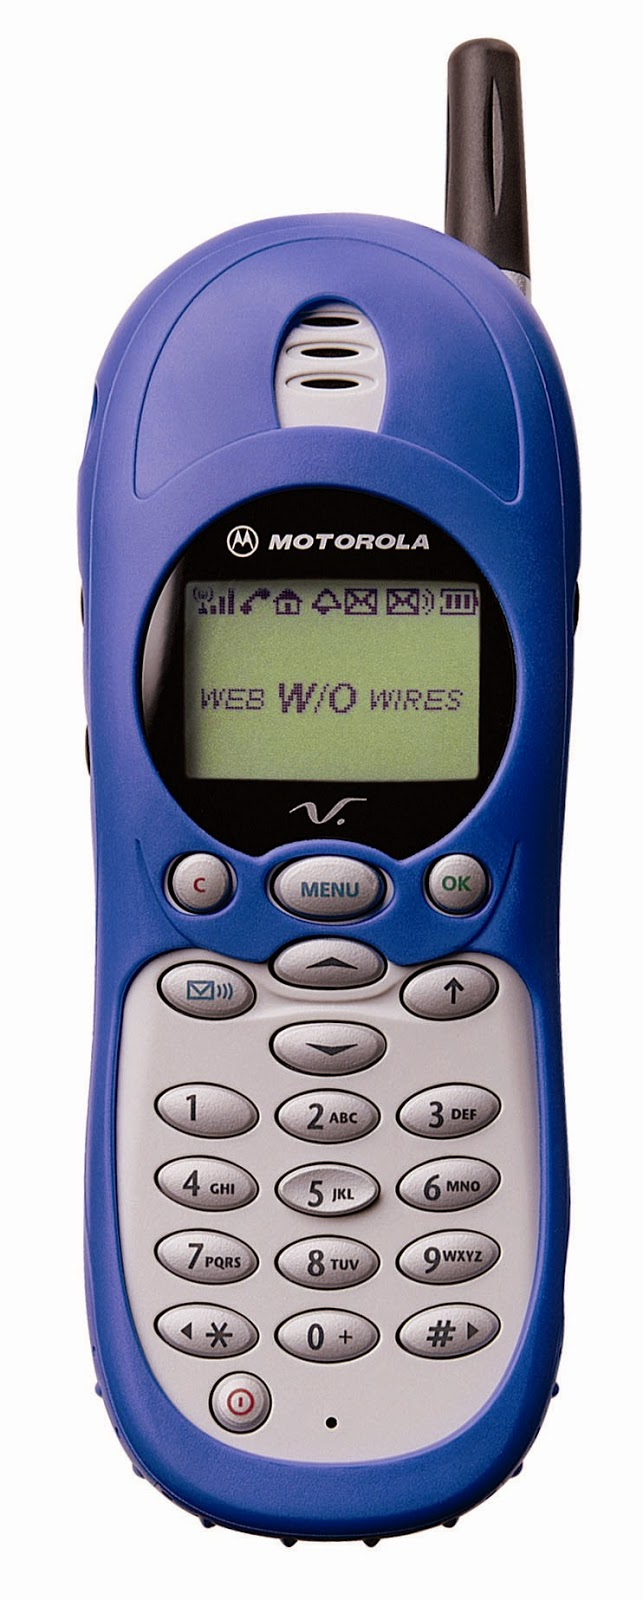 Motorola v2288 Mobile Phone